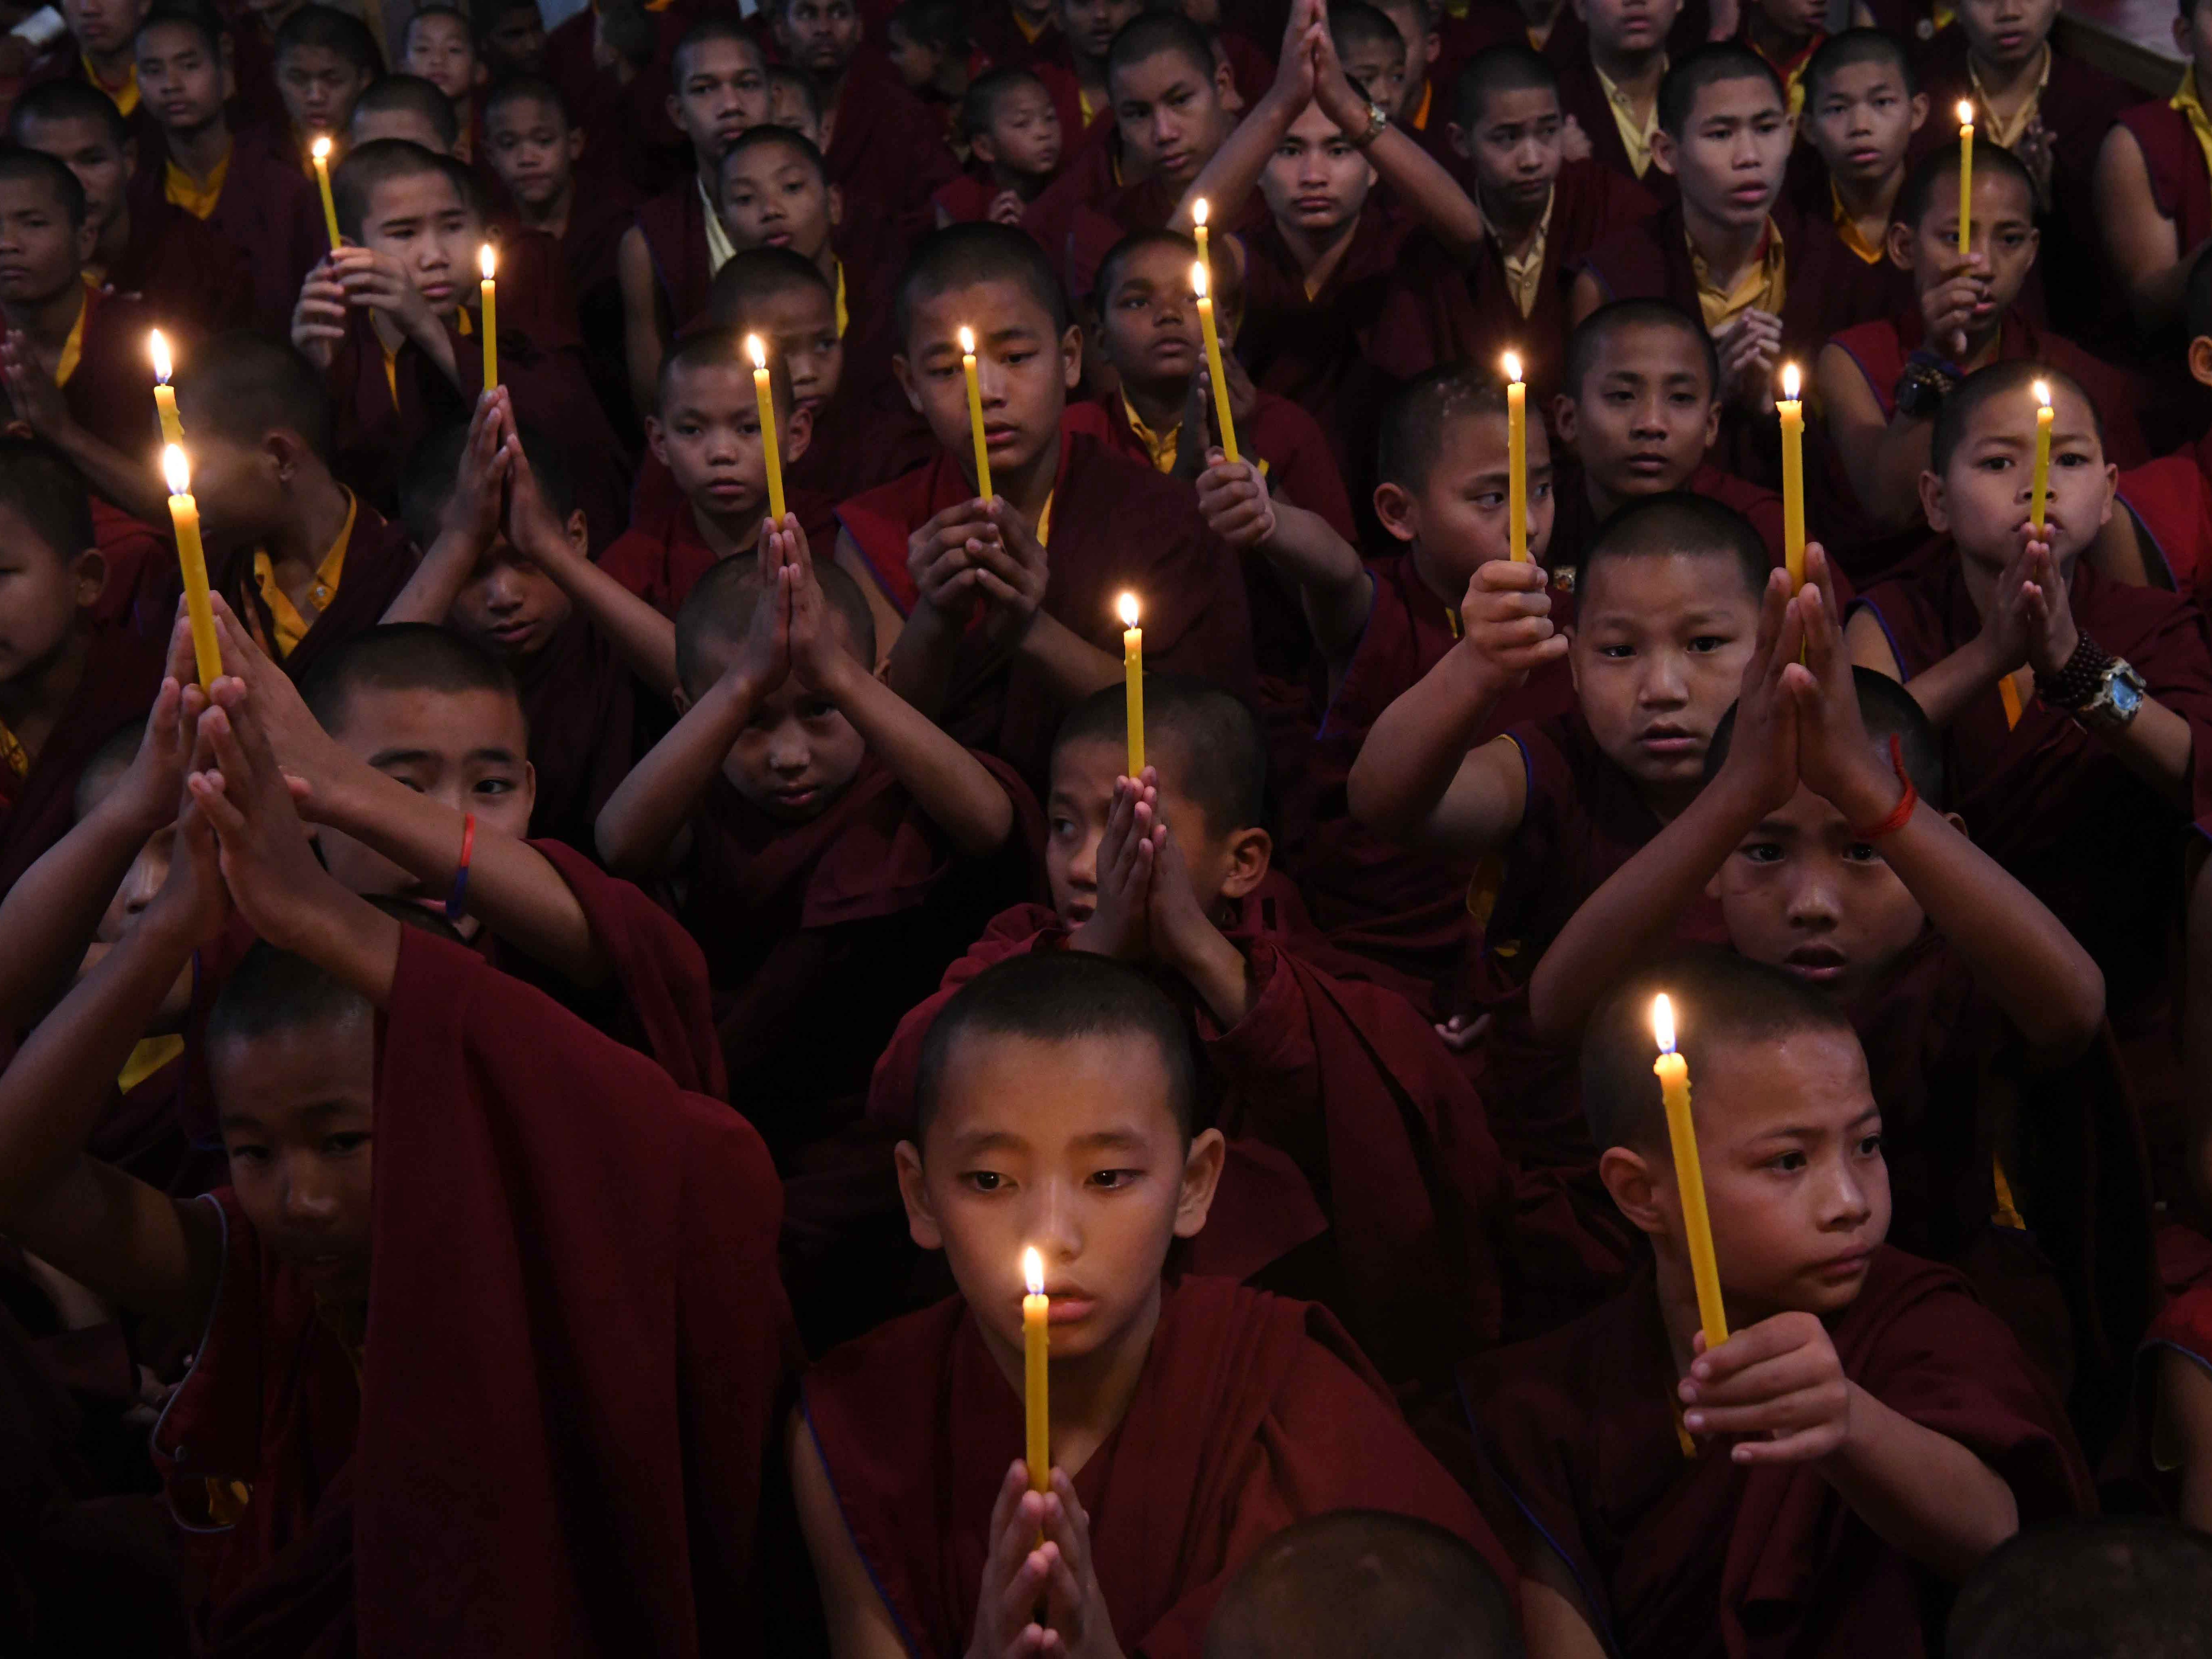 Novice Buddhist monks offer prayers at Tergar monastery in Bodhgaya in the Indian state of Bihar on Feb. 15, 2019, the day after an attack on a paramilitary Central Reserve Police Force (CRPF) convoy in the Lethpora area of Kashmir. India and Pakistan's troubled ties risked taking a dangerous new turn on Feb. 15 as New Delhi accused Islamabad of harboring militants behind the deadliest bombing in three decades of bloodshed in Indian-administered Kashmir. At least 41 paramilitary troops were killed on February 14 as explosives packed in a van ripped through a convoy bringing 2,500 troopers back from leave not far from the main city Srinagar.